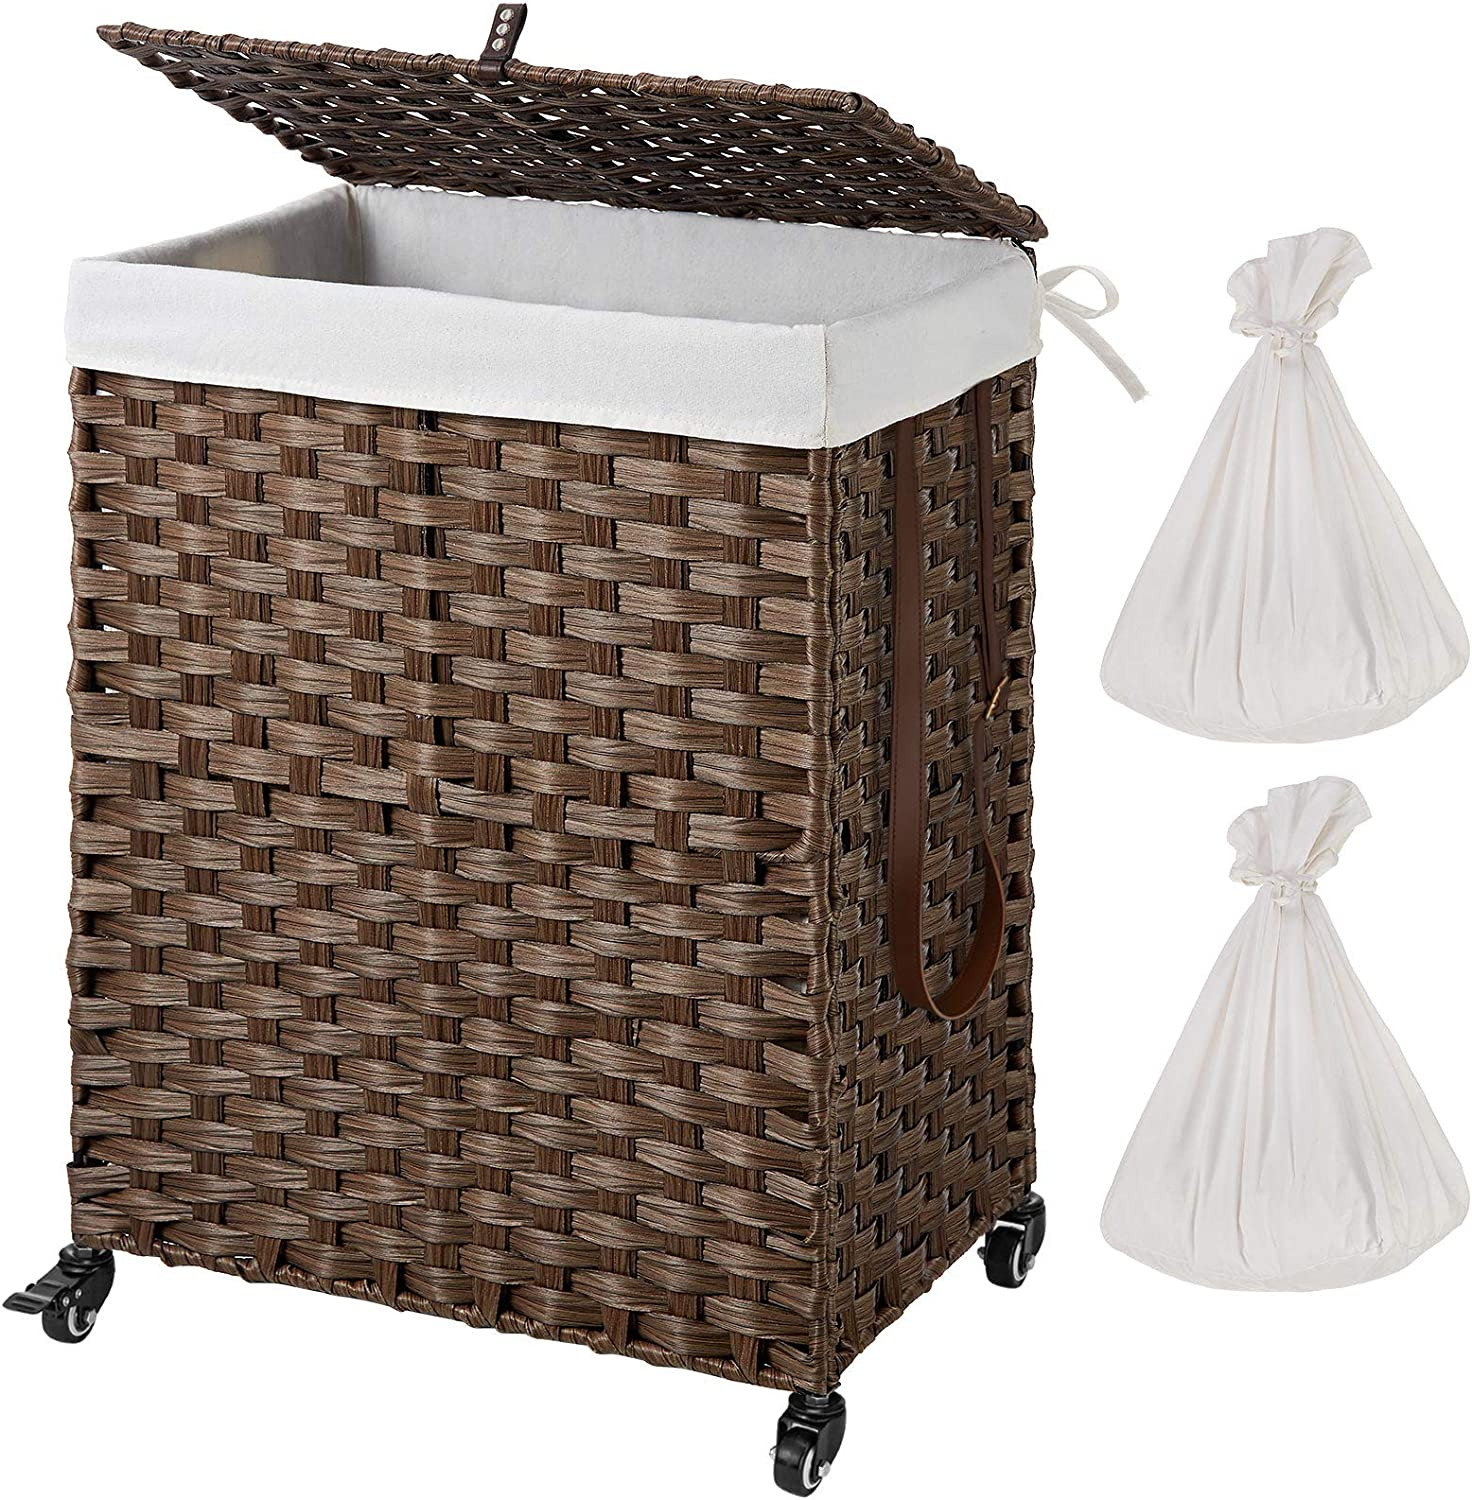 Greenstell Handwoven Laundry Hamper with Wheels and 2 Removable Liner Bags, Synthetic Rattan Clothes Laundry Basket with Lid and Handles, Foldable and Easy to Install (Brown)